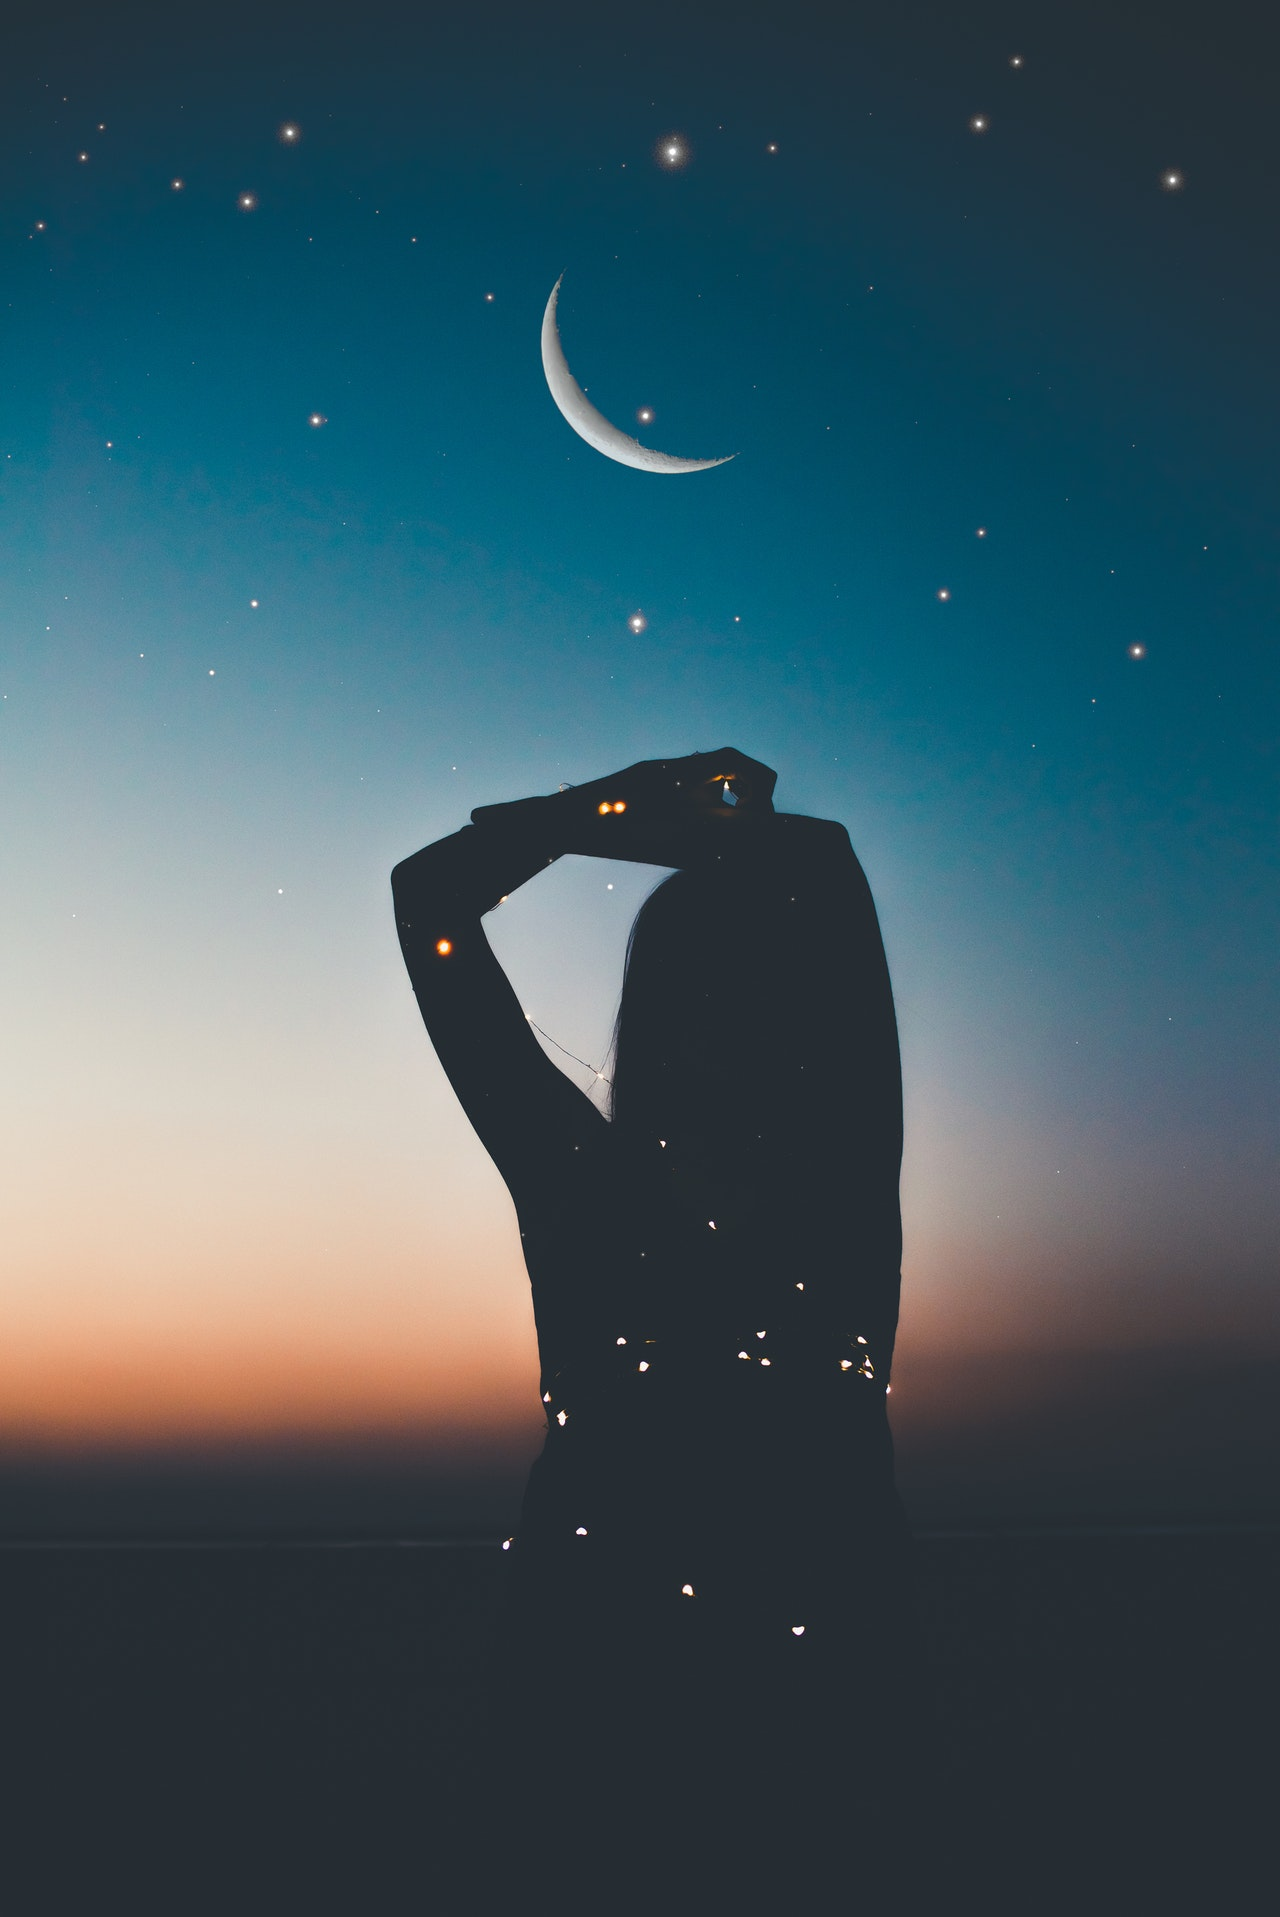 https://www.pexels.com/photo/silhouette-of-person-under-starry-night-artwork-1649079/